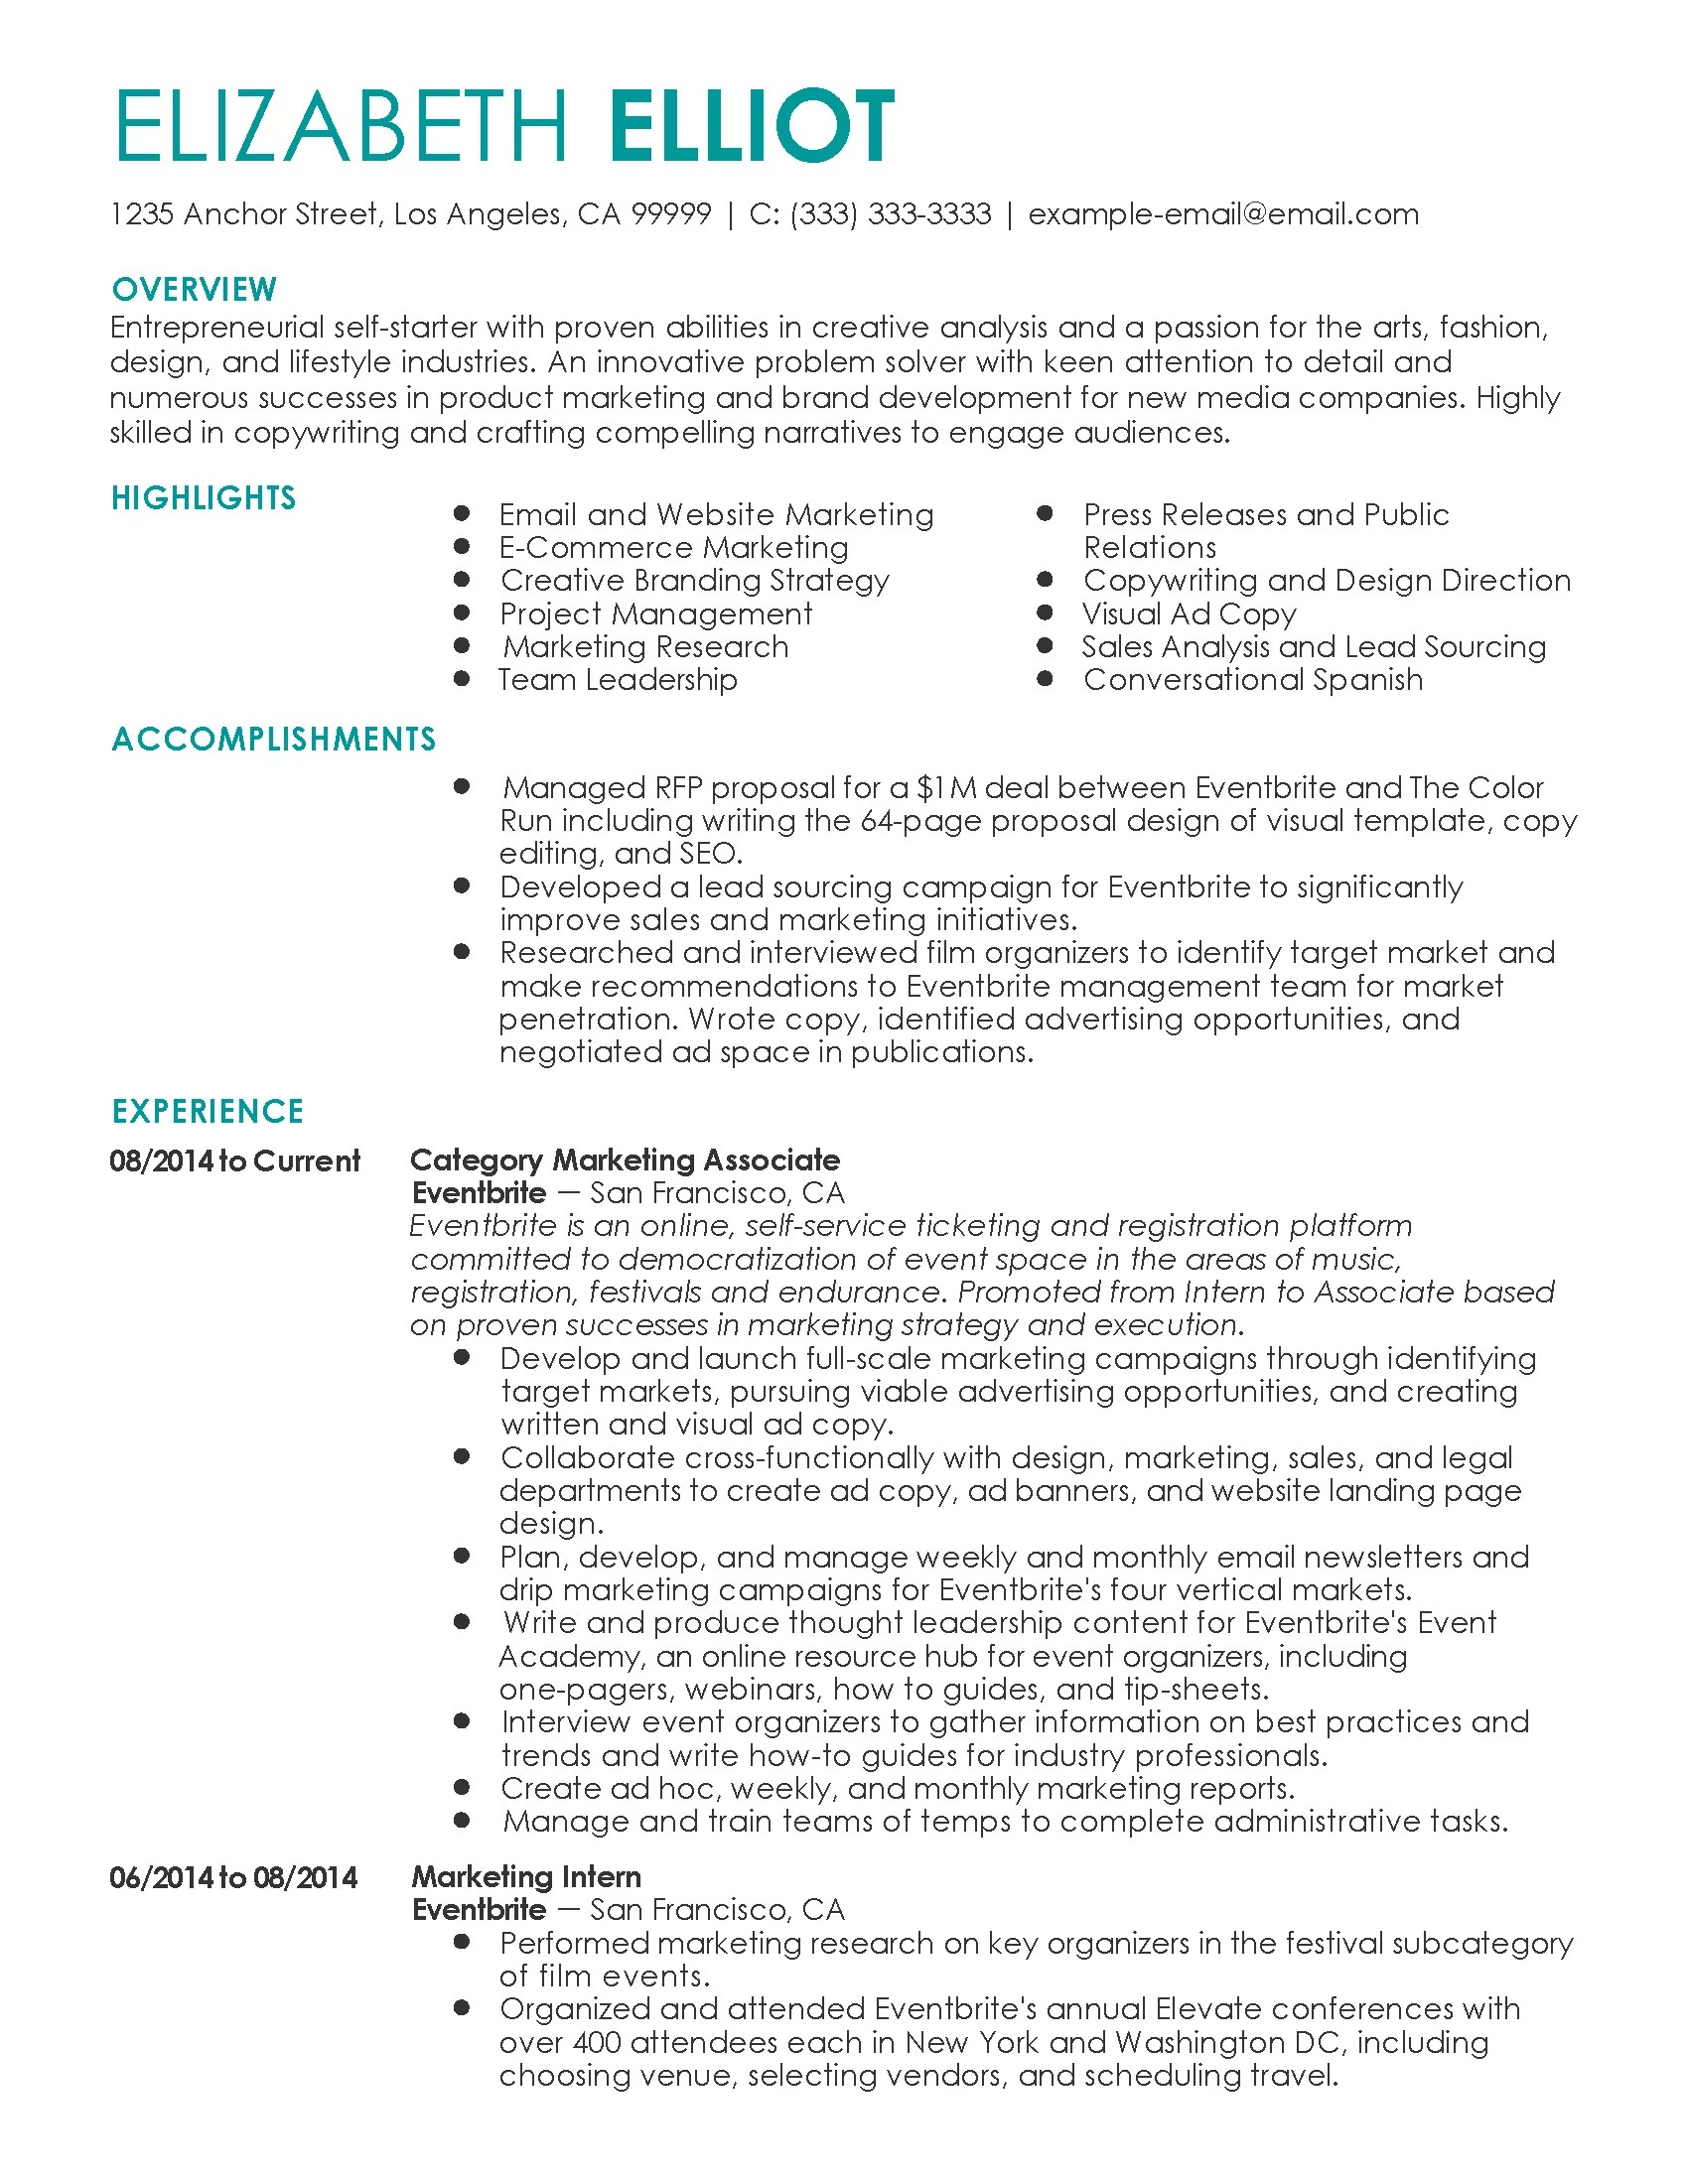 Resume Of An Entrepreneur Professional Fashion Entrepreneur Templates To Showcase